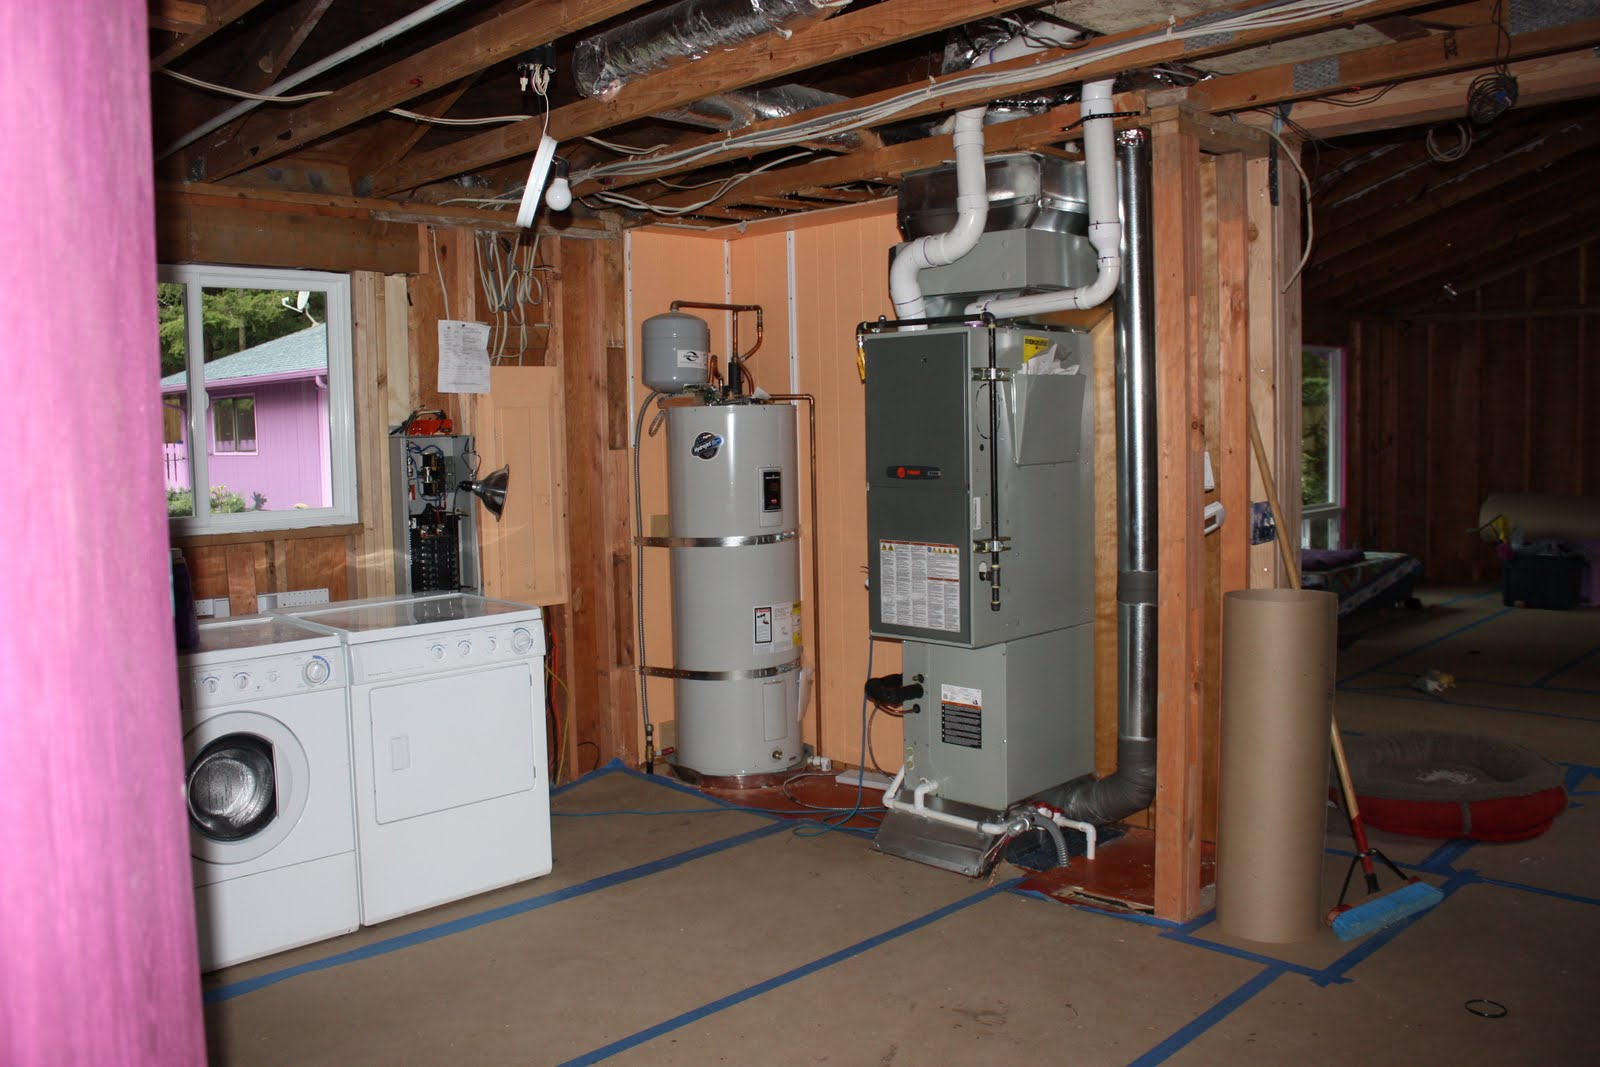 How to connect a gas boiler